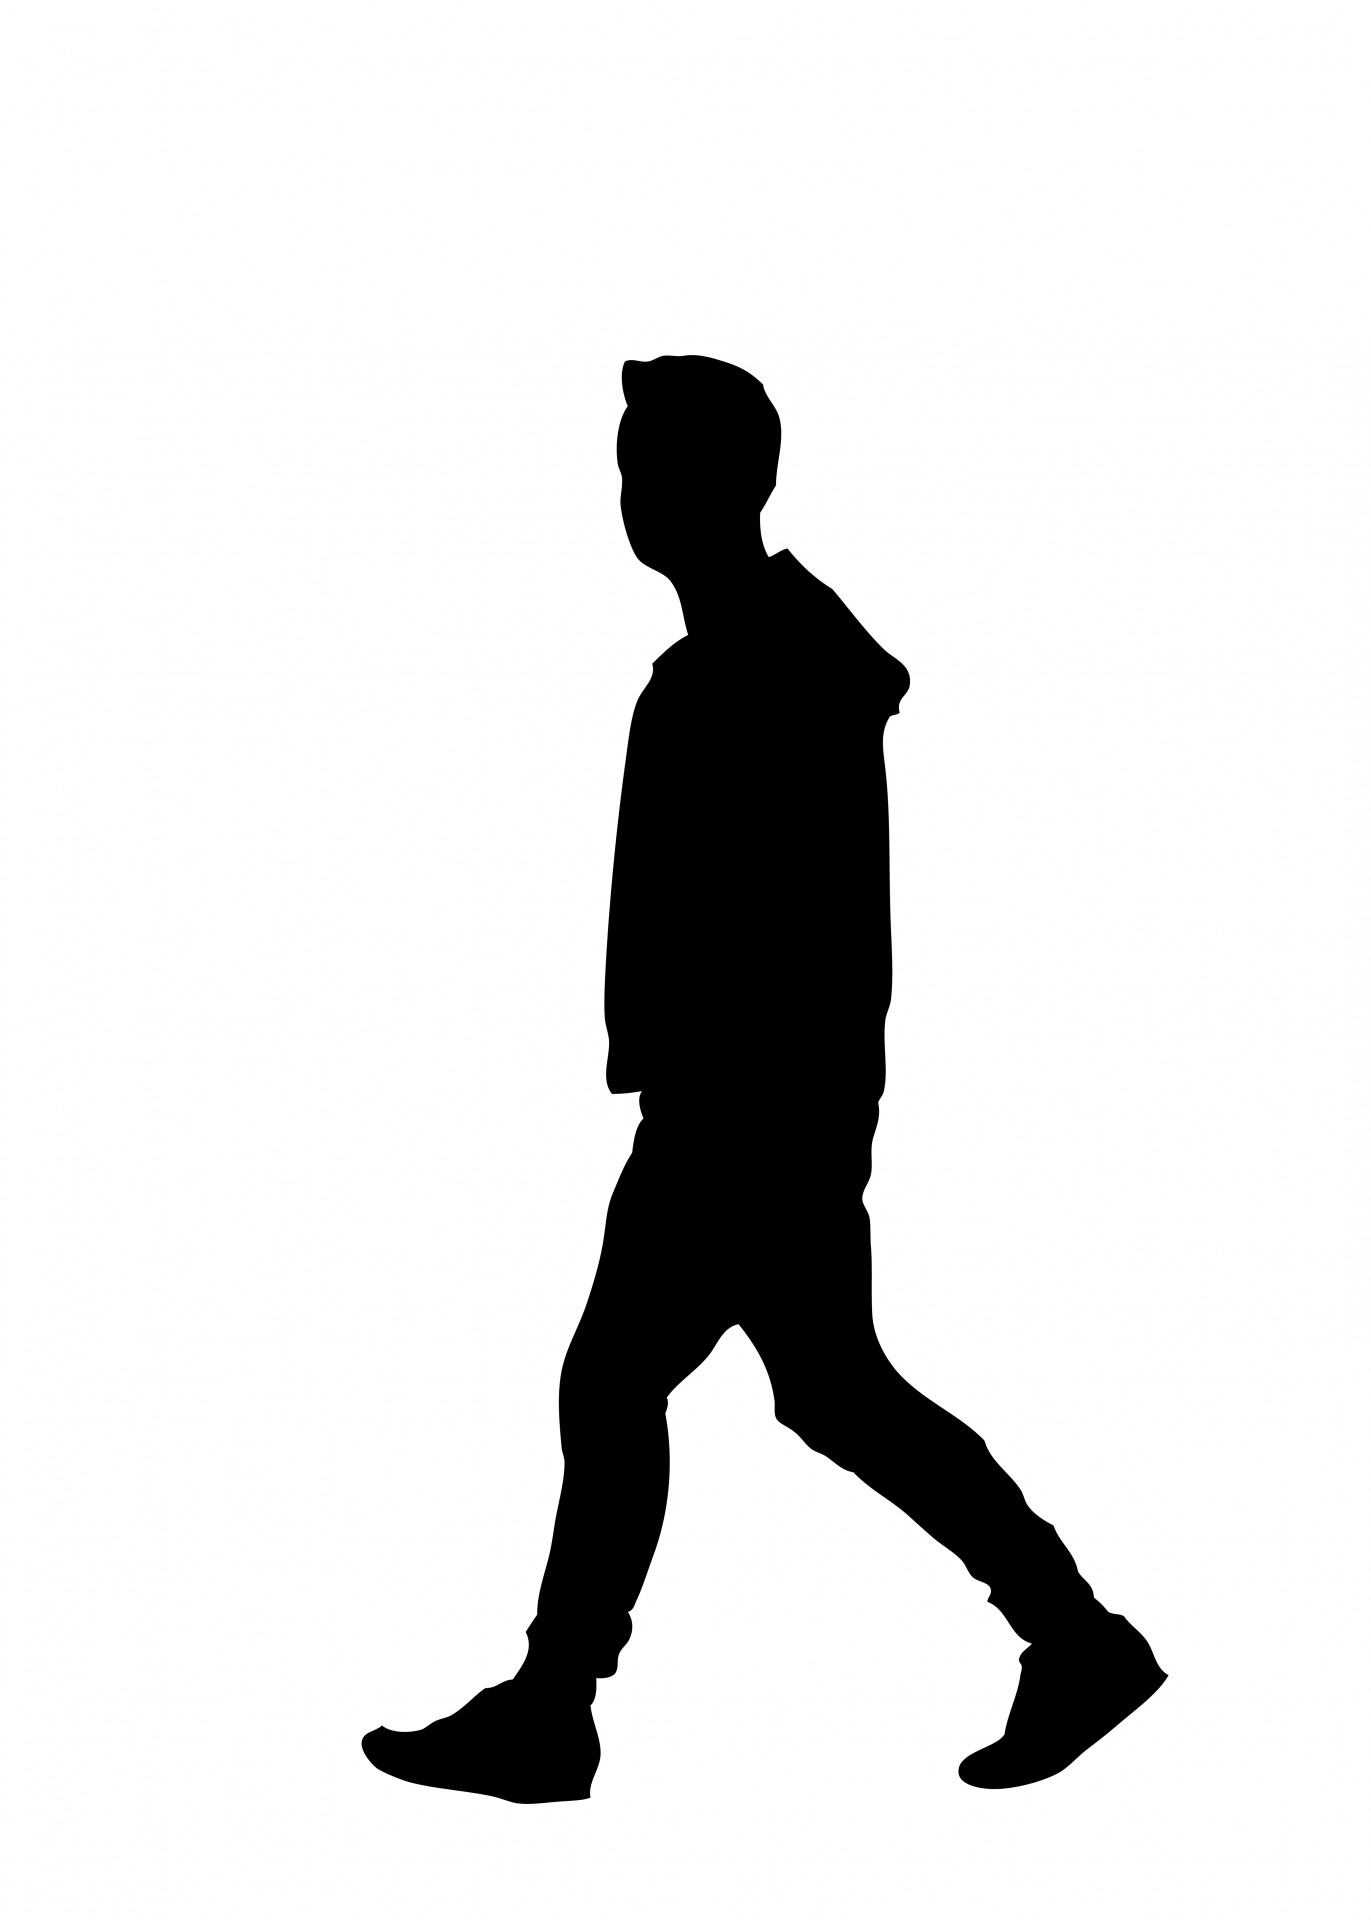 Clip Art Black Silhouette Of A Person Clipart - Clipart Kid